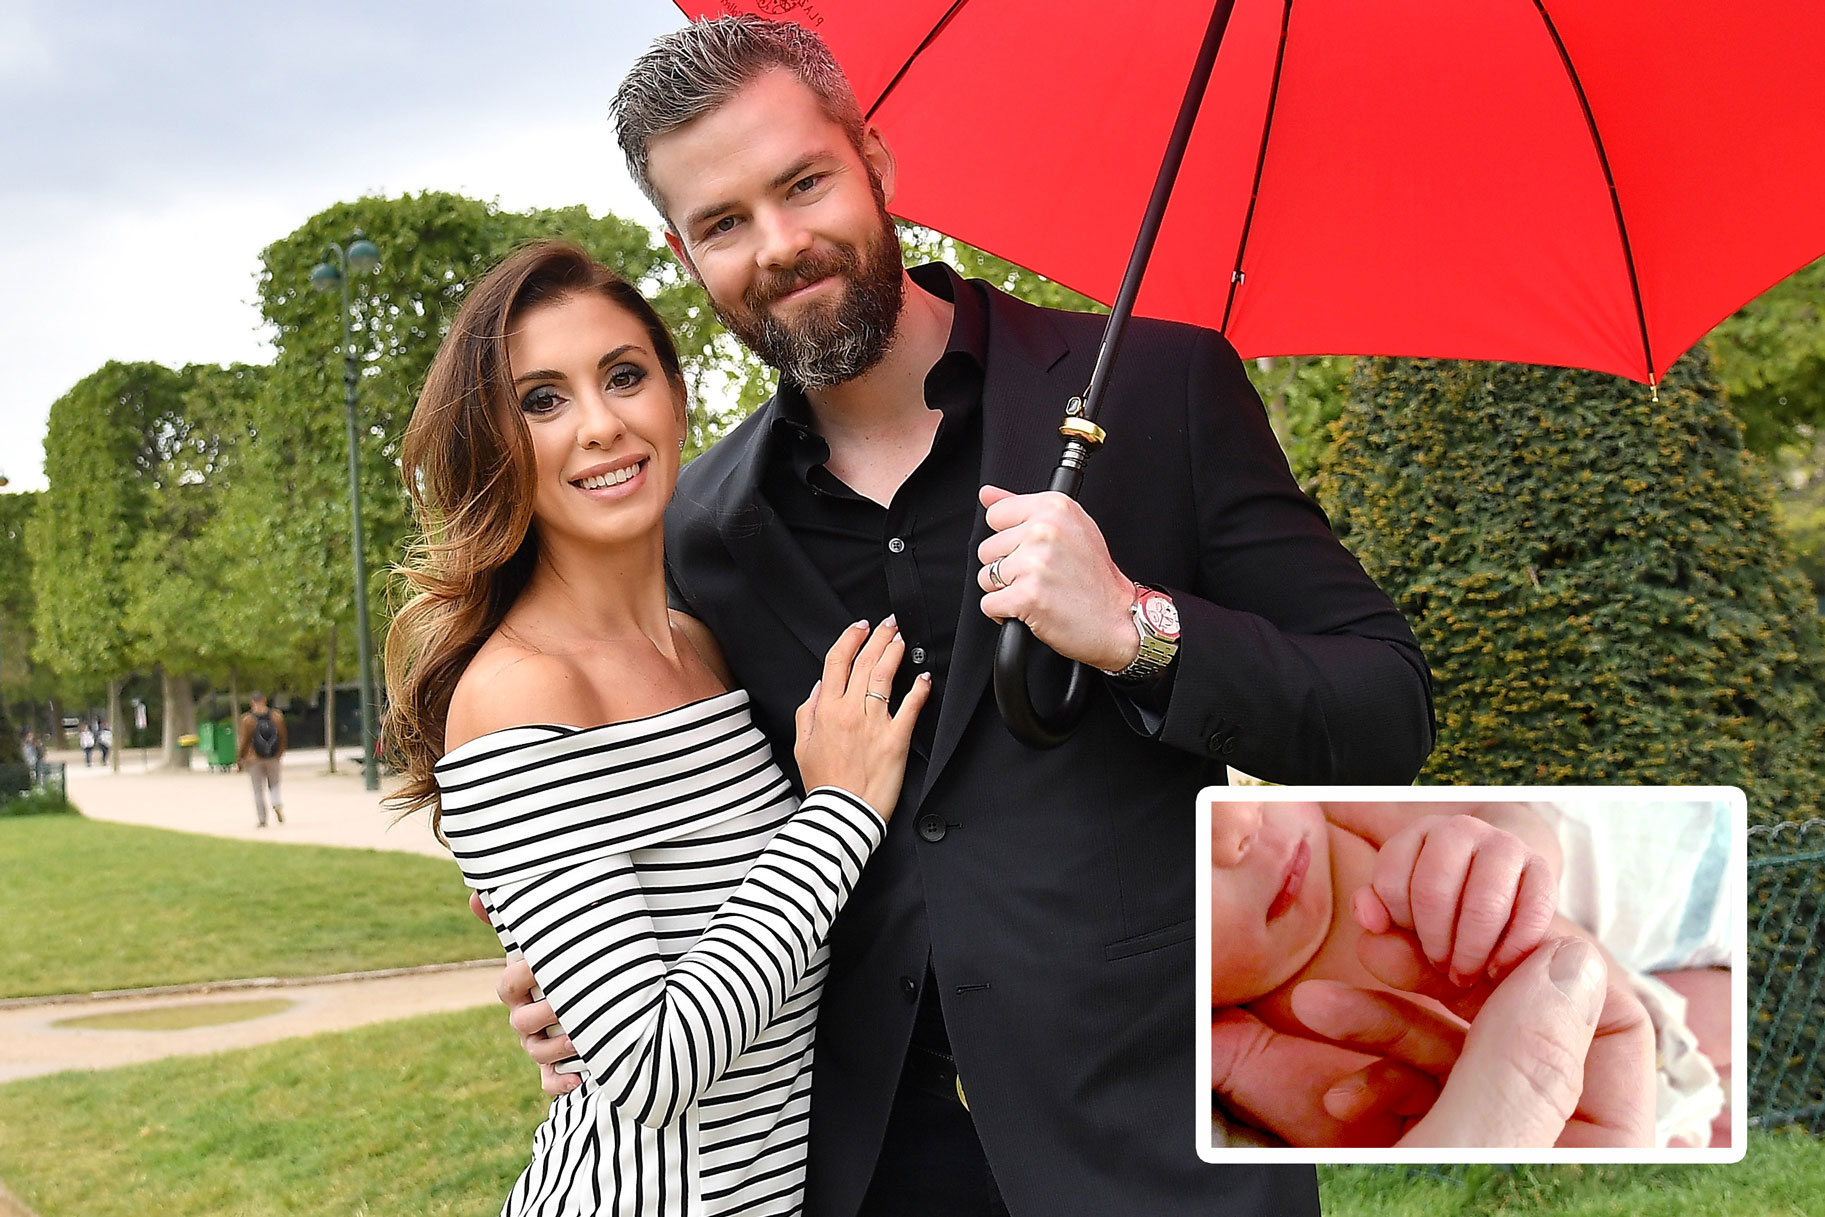 Ryan Serhant and Emilia Bechrakis' Baby Bump